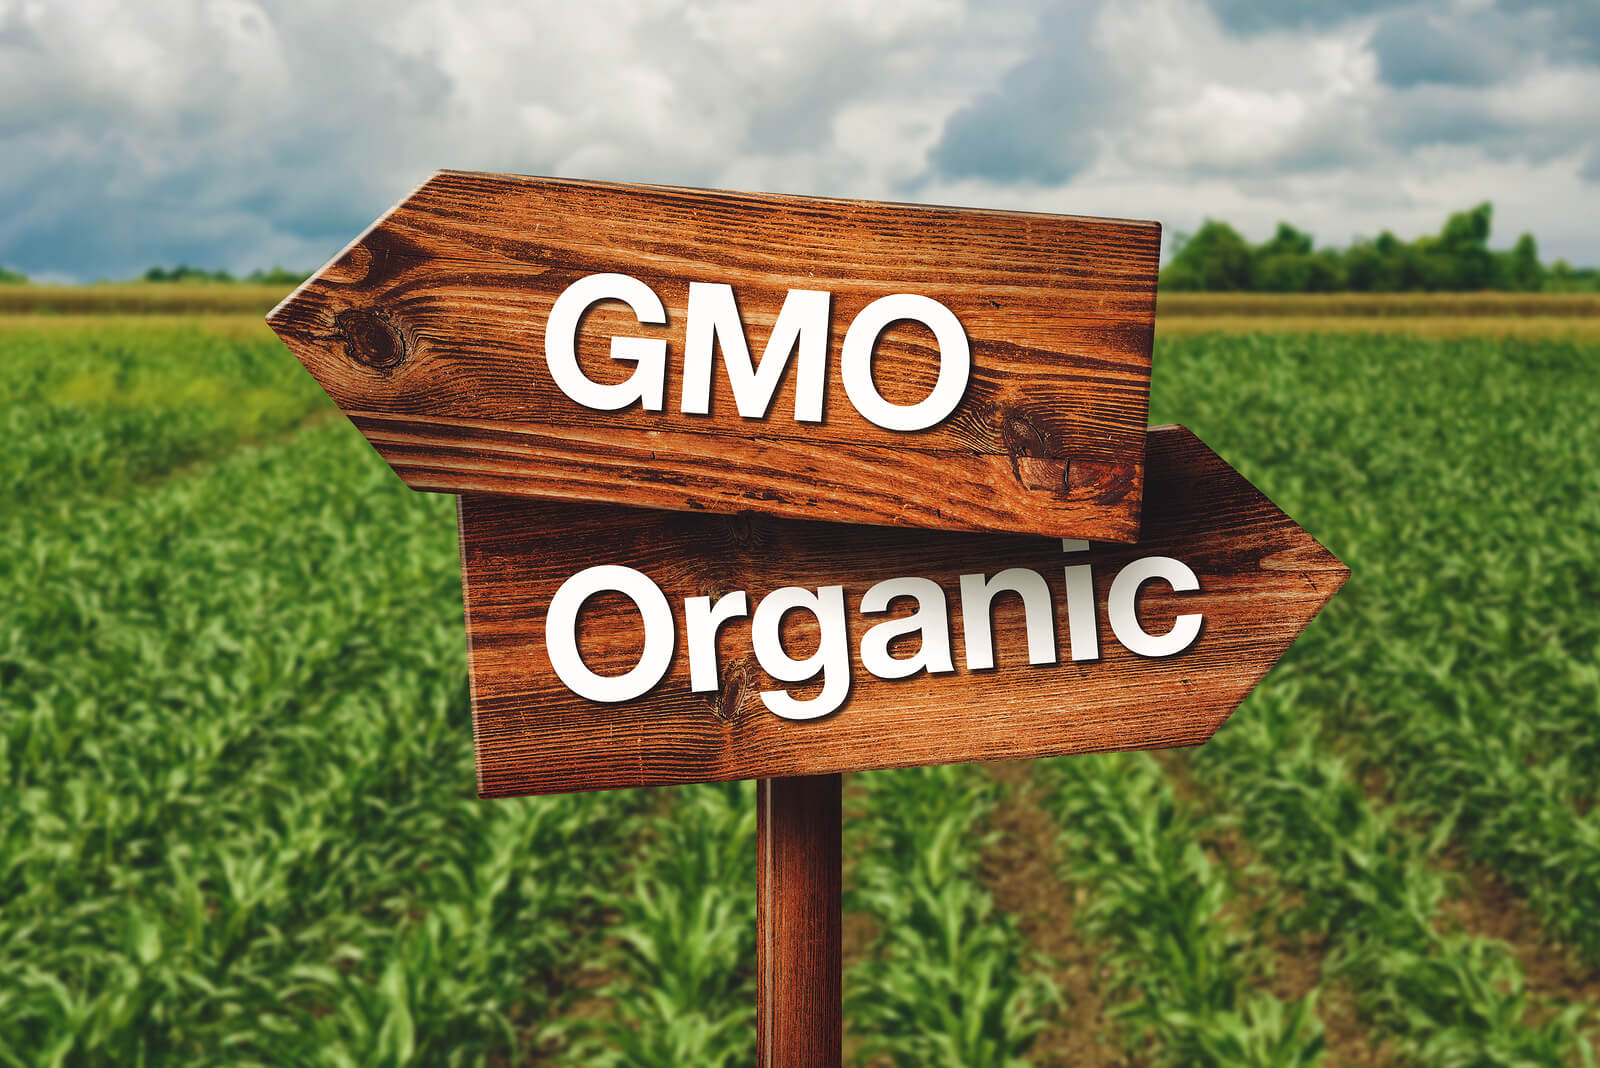 The idea of increasing agricultural efficiency applies to traditional - Organics V Conventional V Gmos Debate Grows Over Farm Yields And Sustainability Genetic Literacy Project